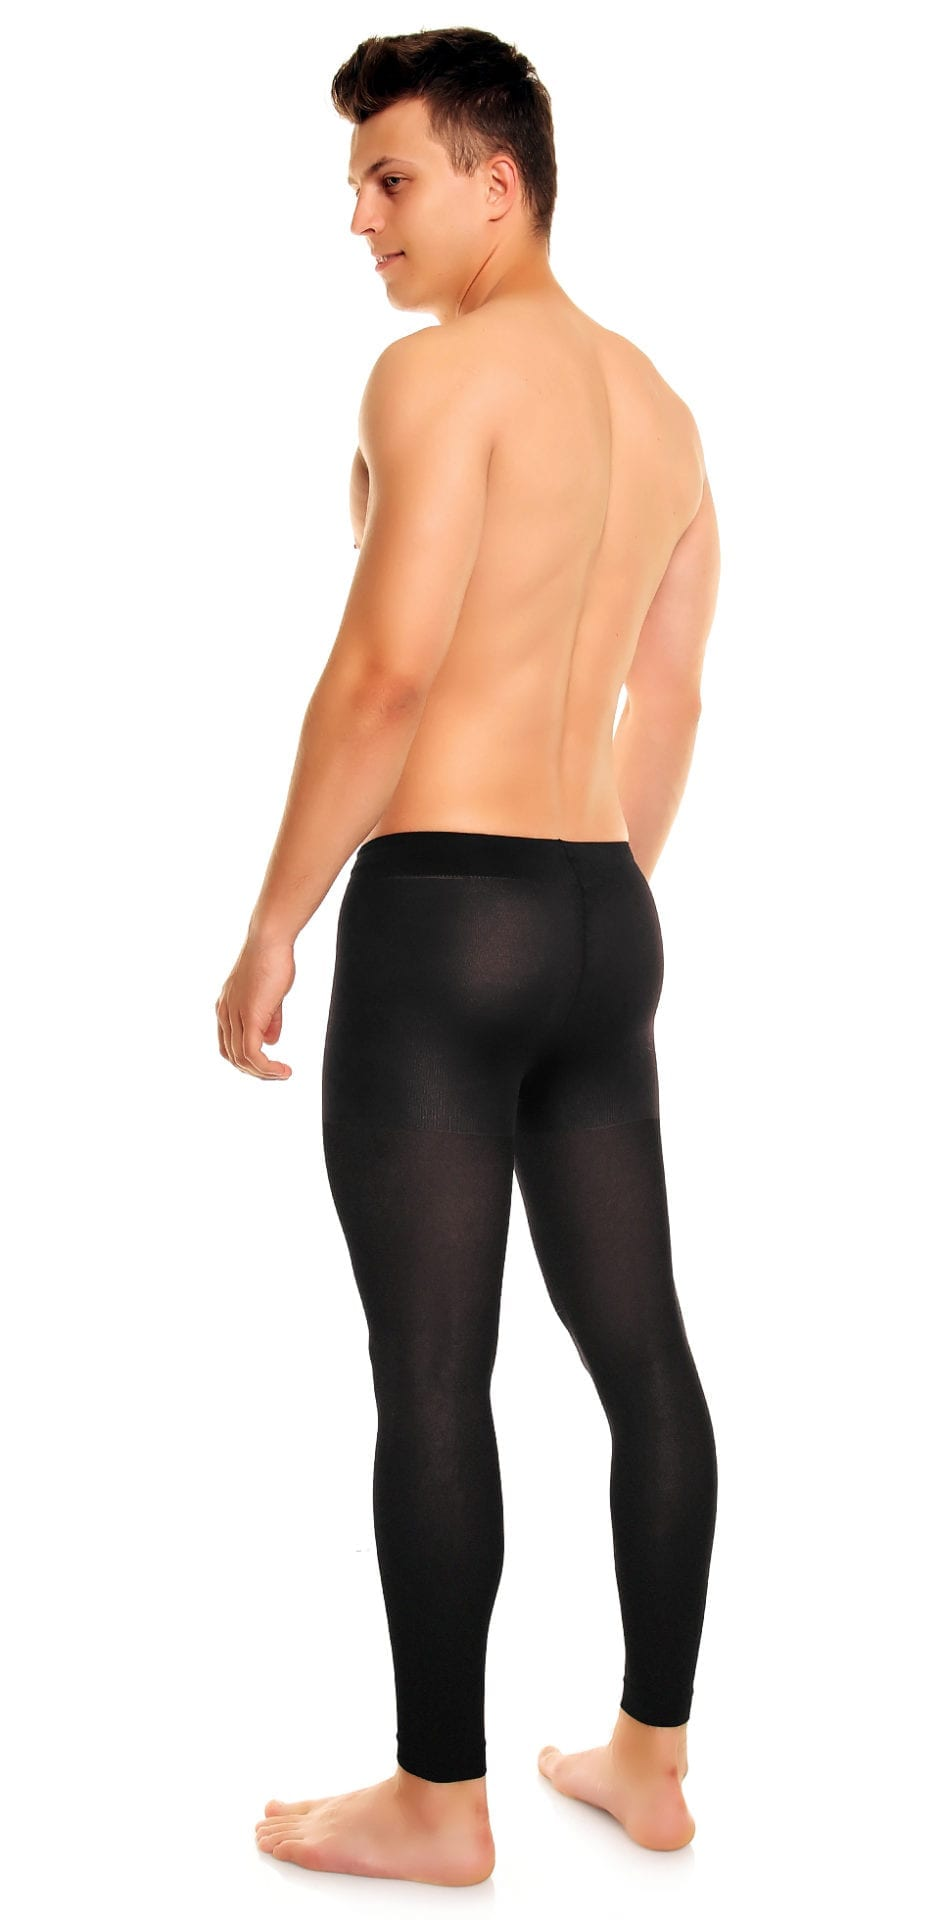 Men's Thermoman 100 footless tights 100 denier black back view full body